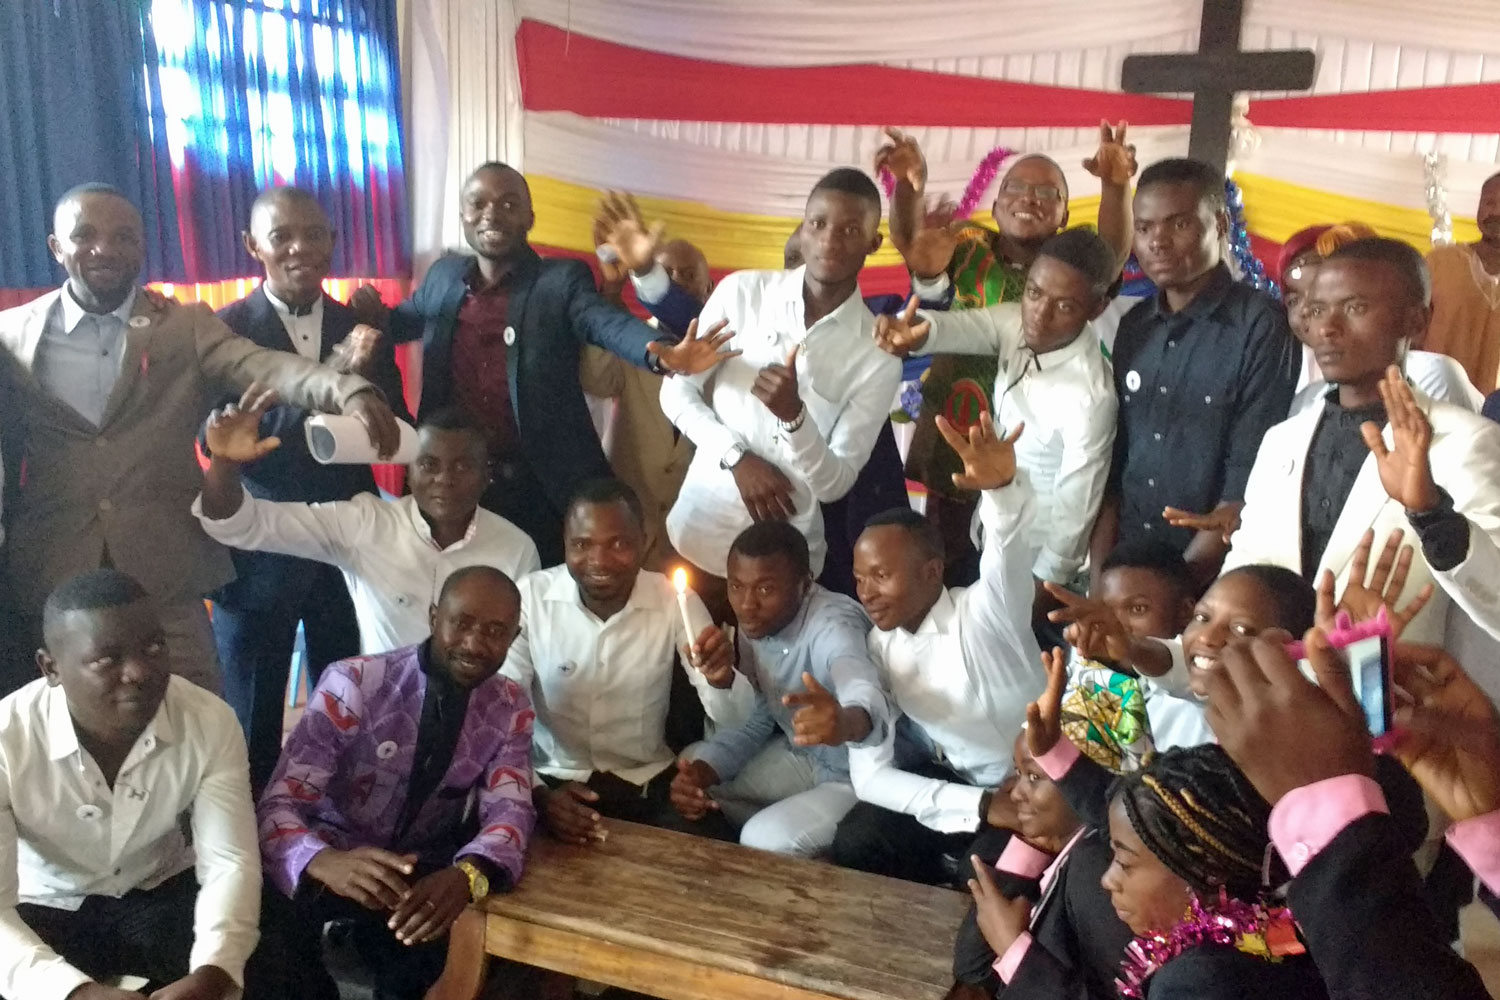 Young people receive peace training through the Kivu Annual Conference of the Eastern Congo Episcopal Area.